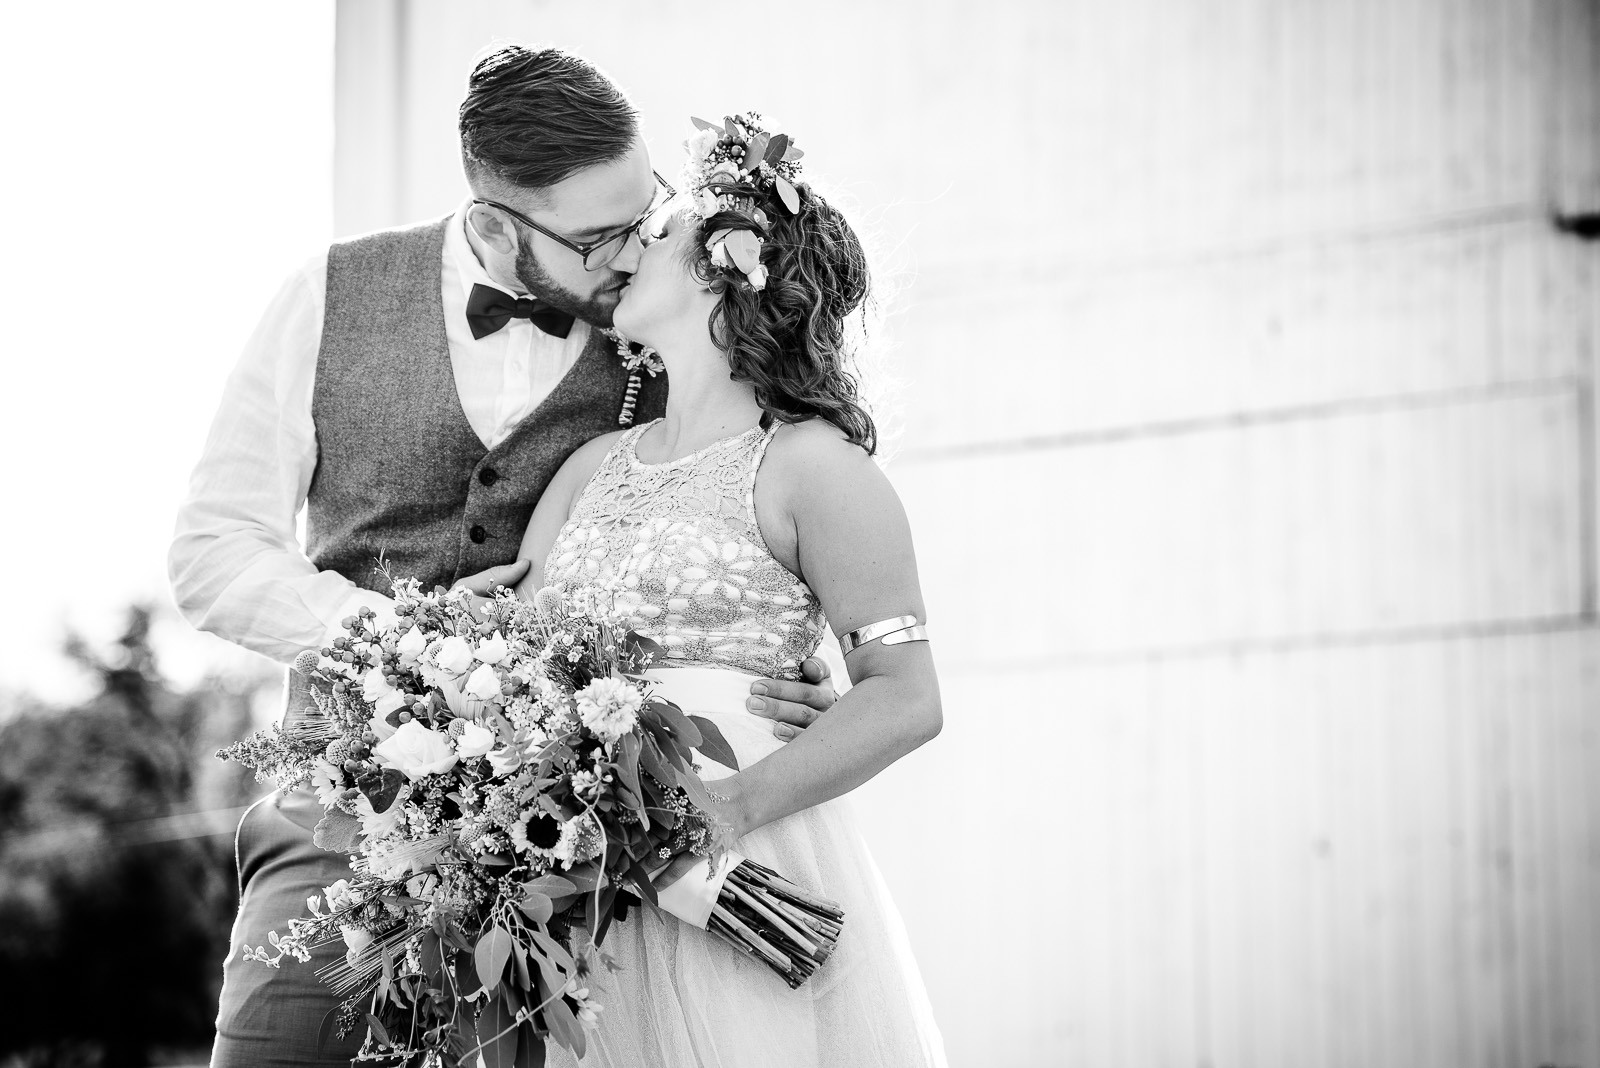 Eric_and_Christy_Photography_Blog_Wedding_Lauren_Jon-11